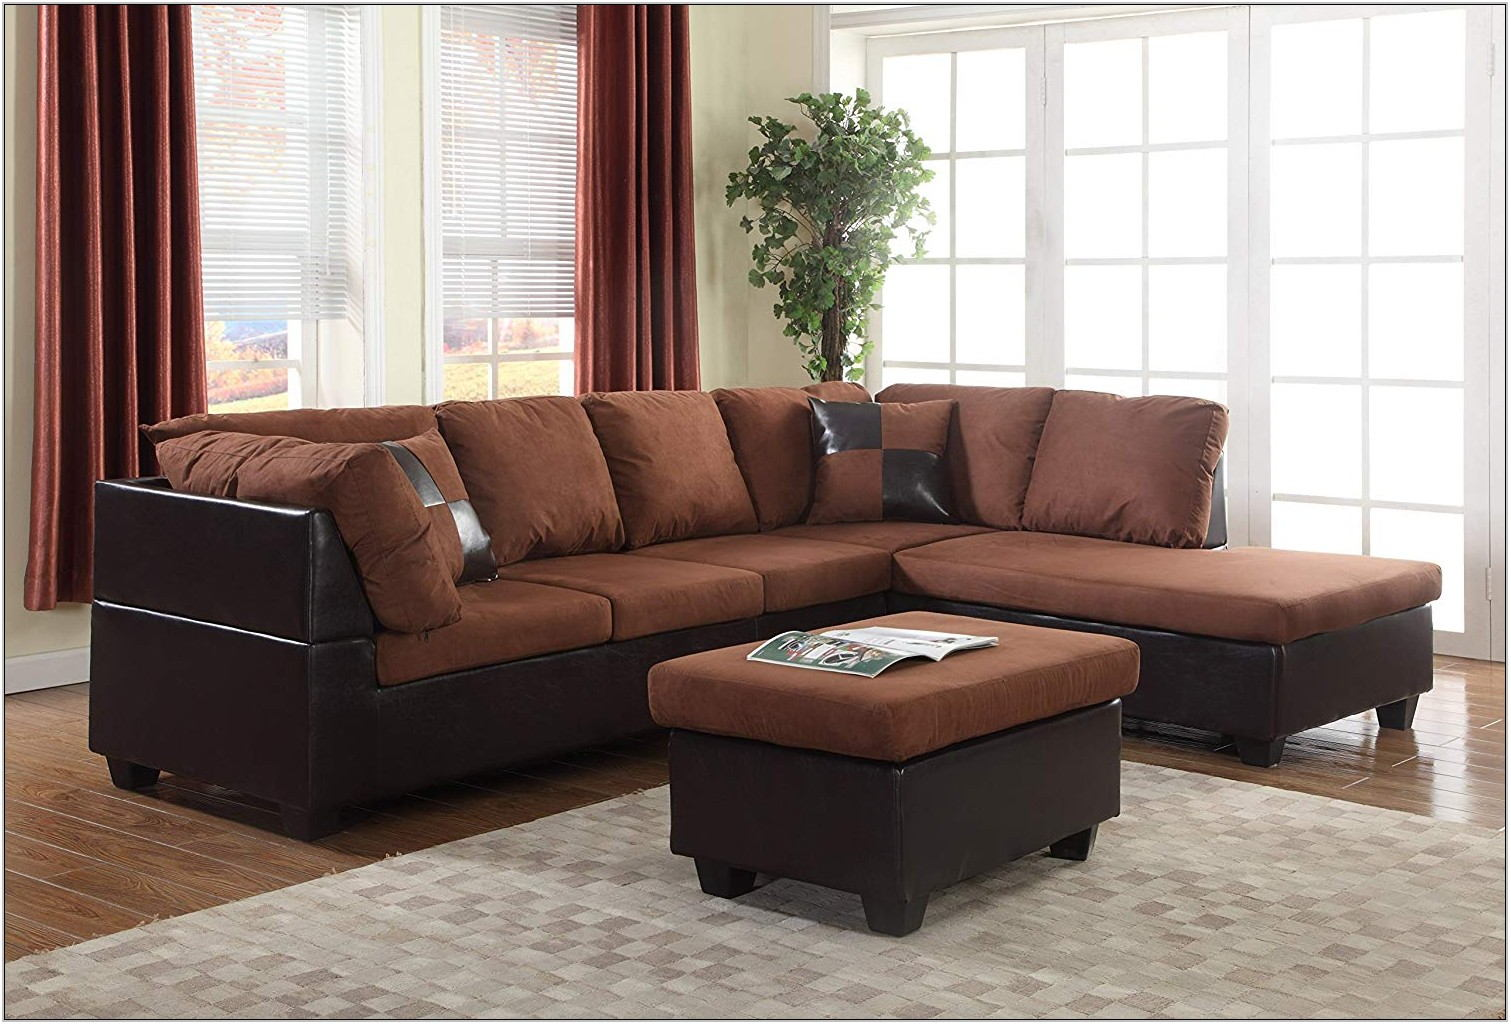 Sectional Couch Living Room Set